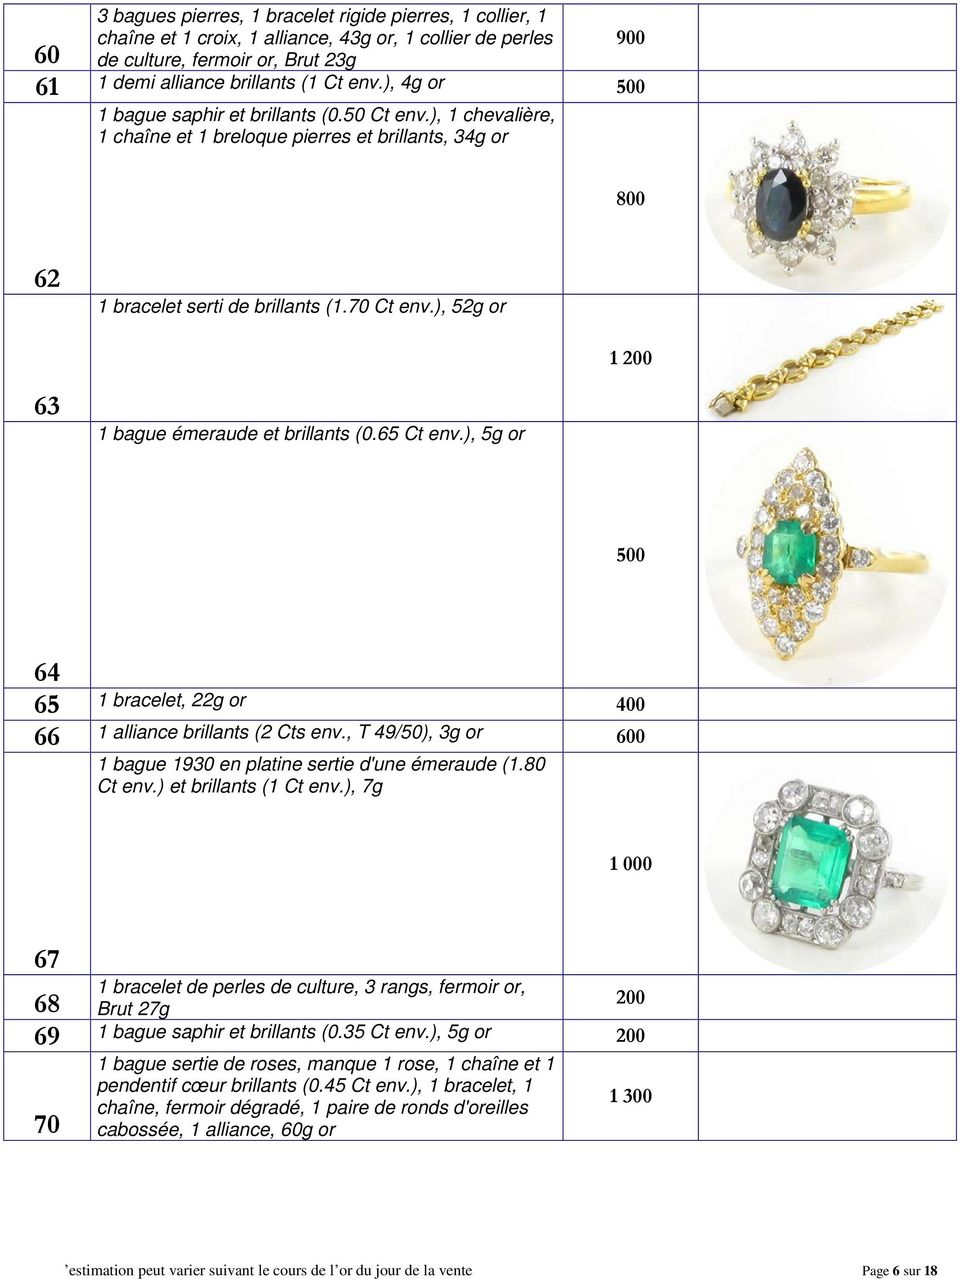 ), 52g or 1 63 1 bague émeraude et brillants (0.65 Ct env.), 5g or 500 64 65 1 bracelet, 22g or 66 1 alliance brillants (2 Cts env., T 49/50), 3g or 1 bague 1930 en platine sertie d'une émeraude (1.